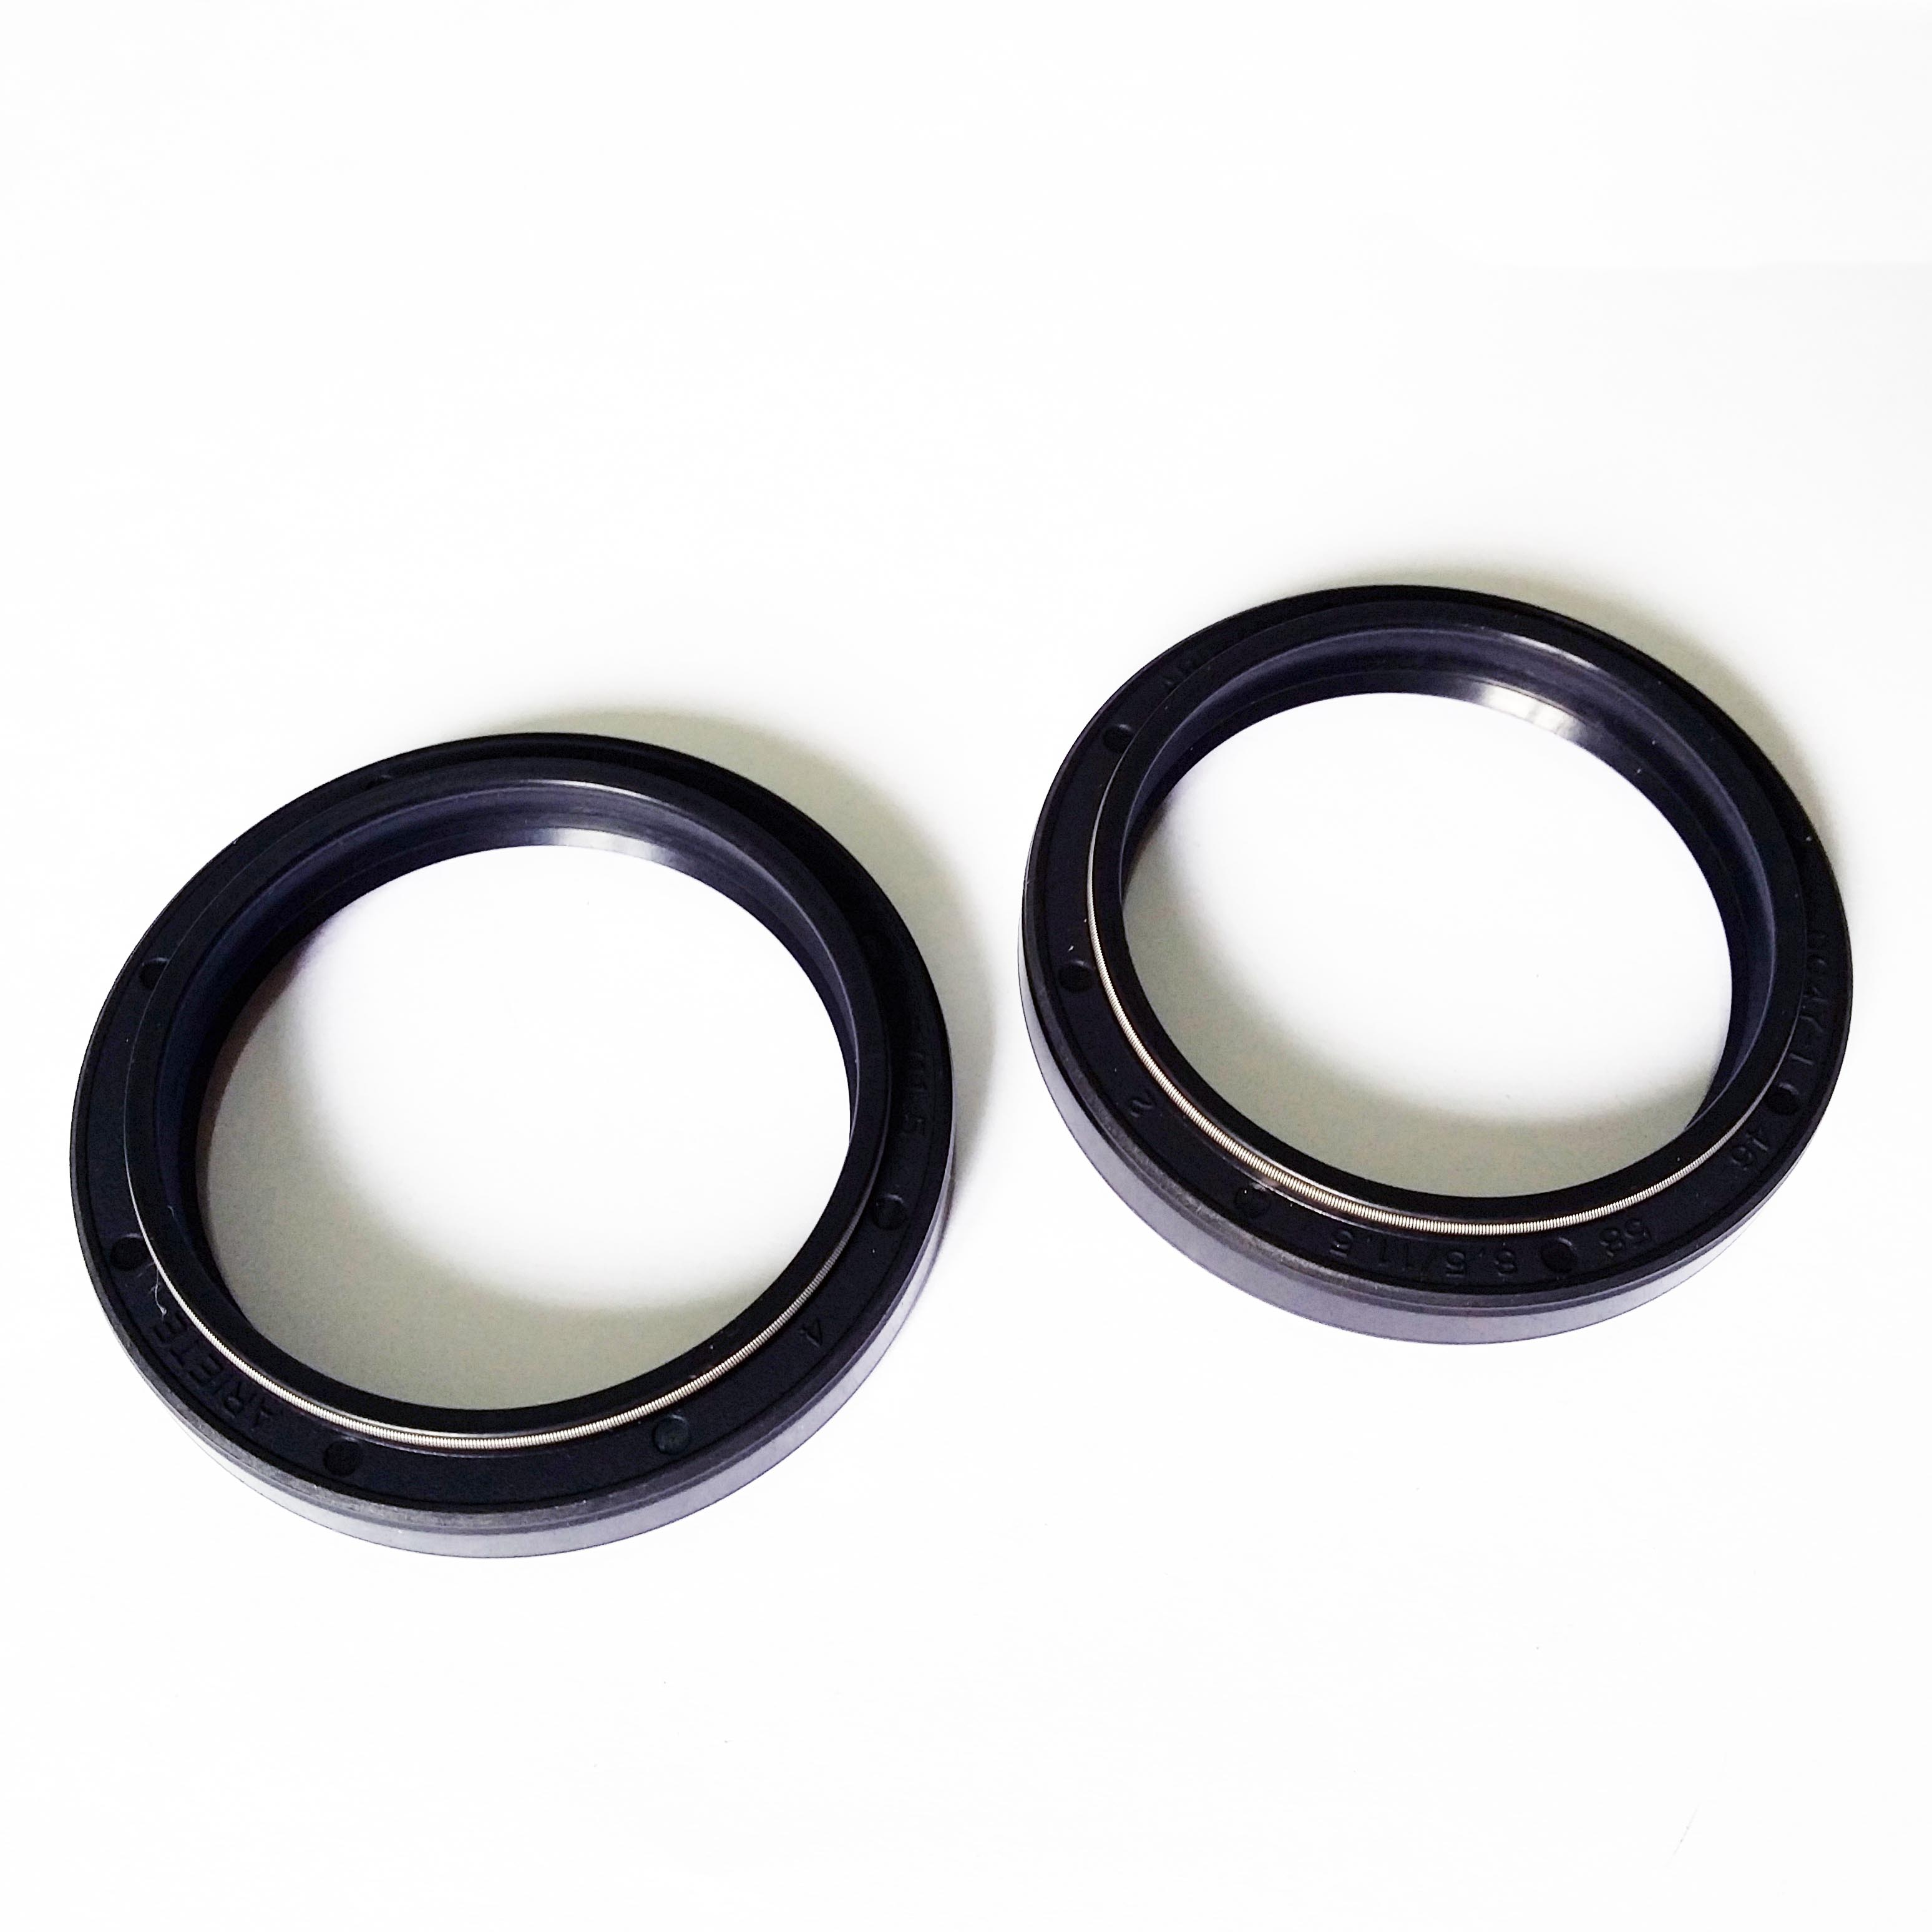 K-Tech Yamaha YZ450F 2003 NOK Front Fork Oil Seals 45x58.1x9.5/11.5mm